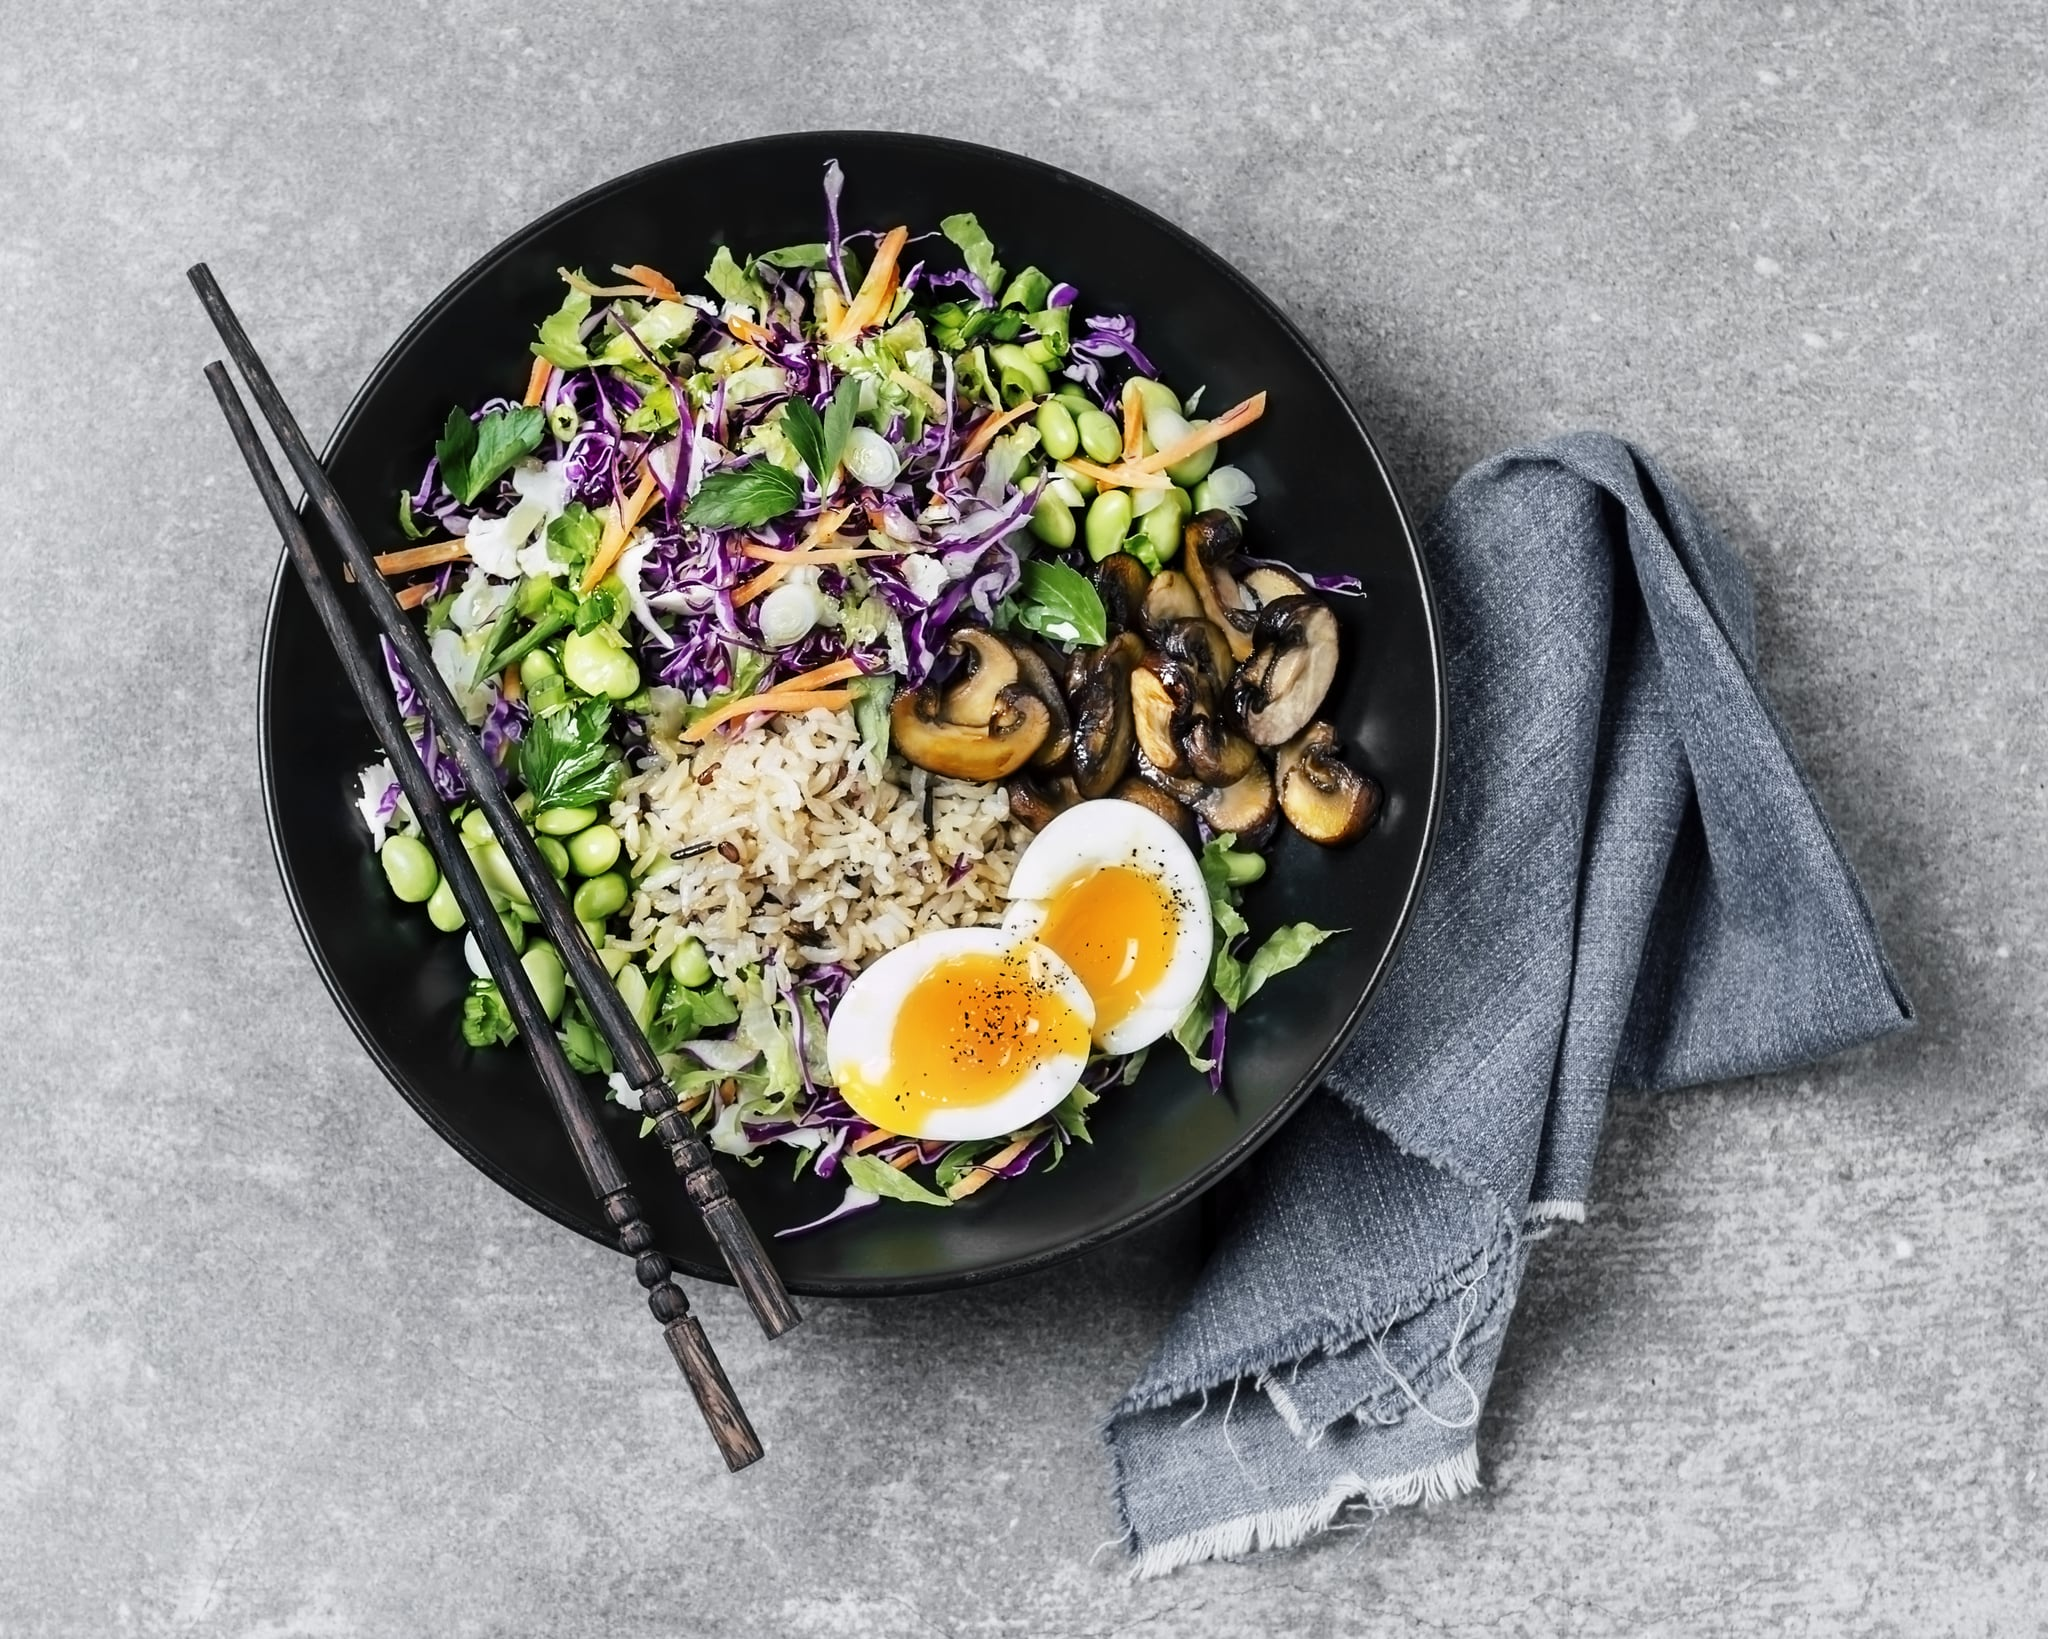 A bowl of fresh salad with fried rice, and boiled eggs on gray background